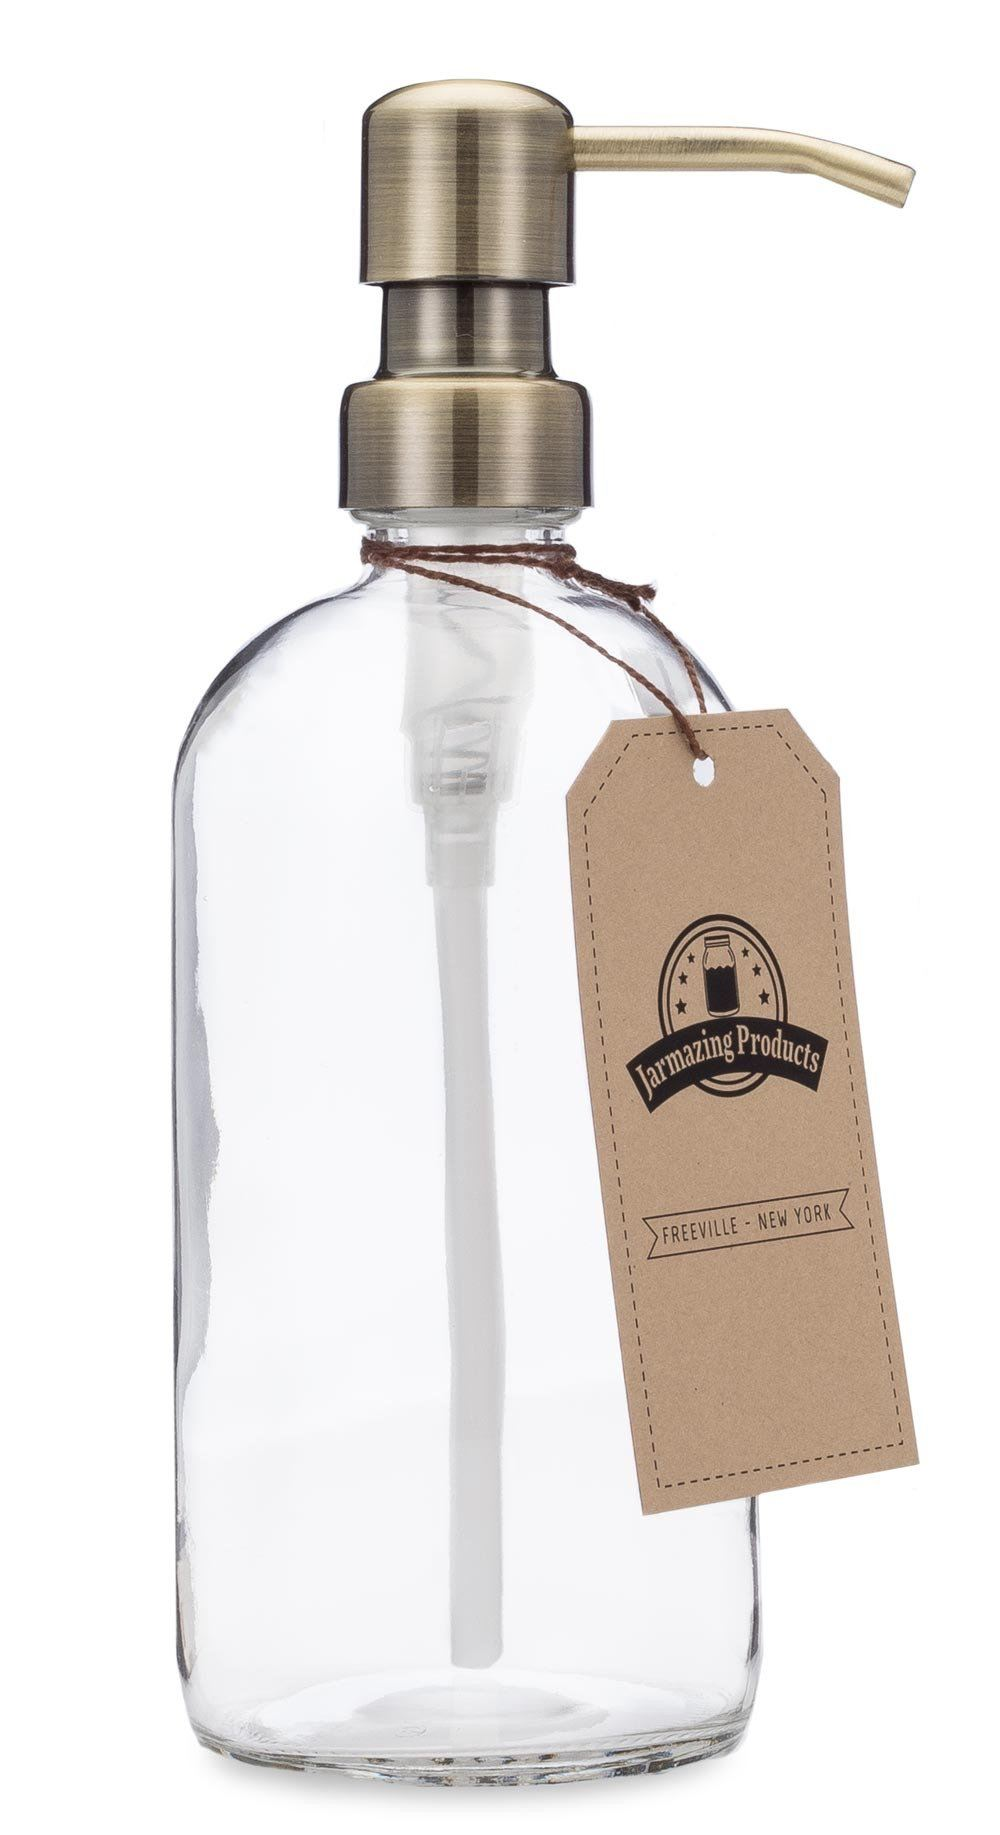 Vintage-Inspired 16oz Glass Soap/Lotion Dispenser Bottle